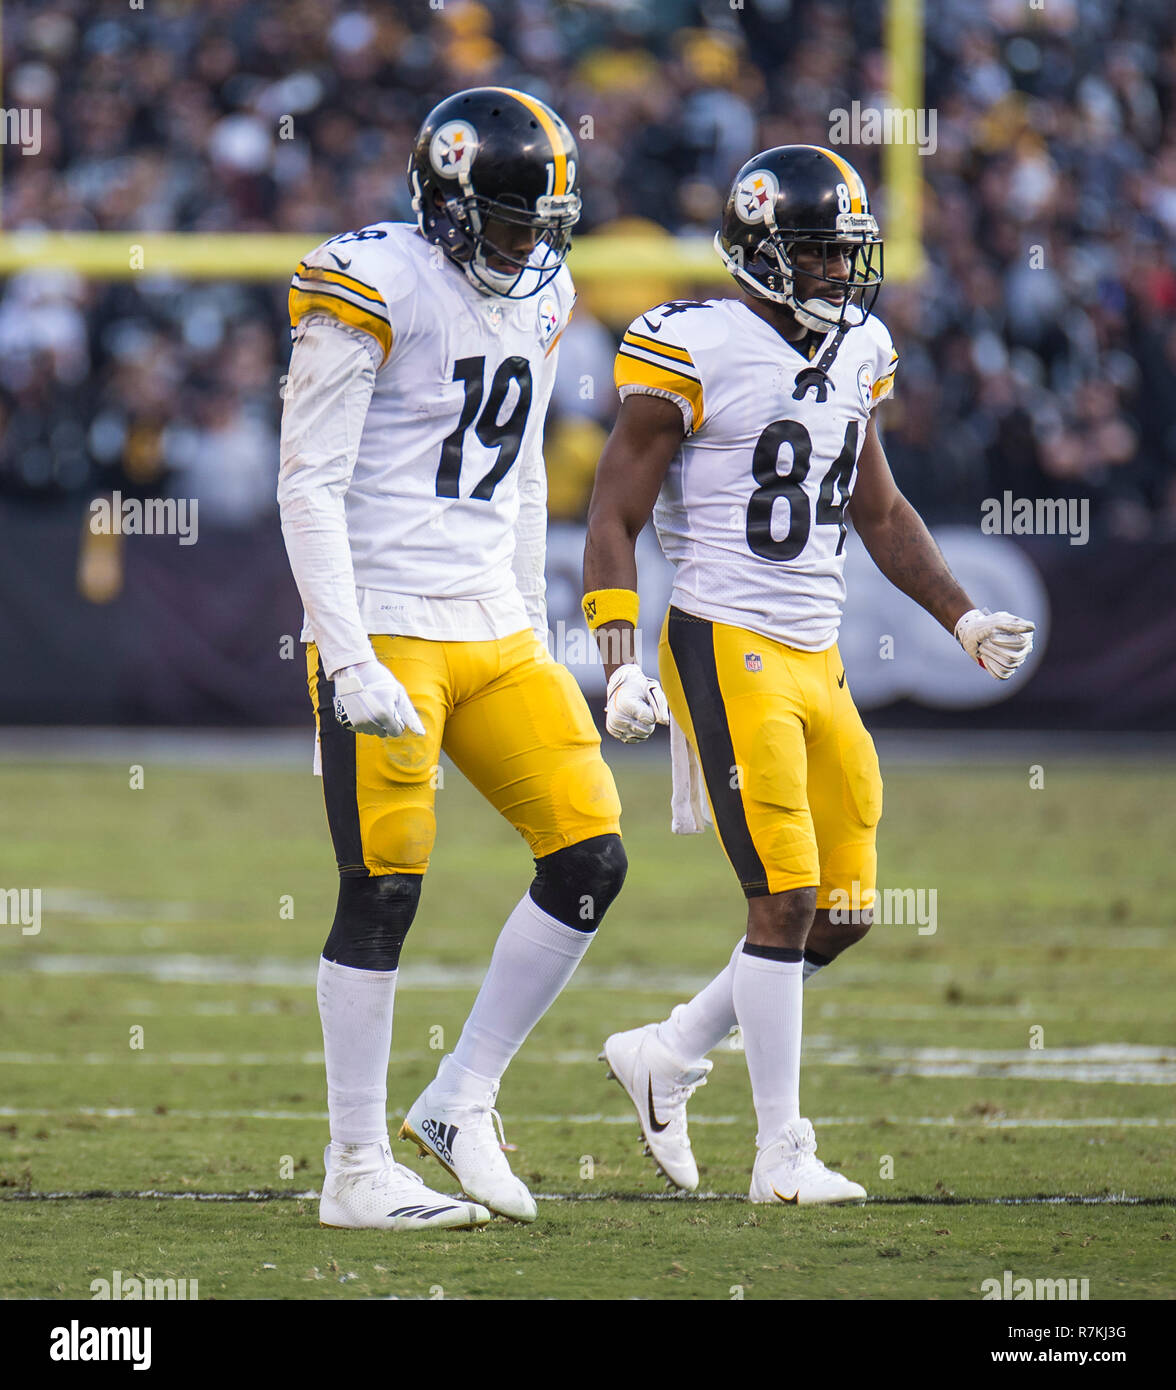 b623efc19 Dec 09 2018 Oakland U.S.A CA Pittsburgh Steelers wide receivers JuJu Smith-Schuster  (19) and wide receiver Antonio Brown (84) walk onto the field during the ...